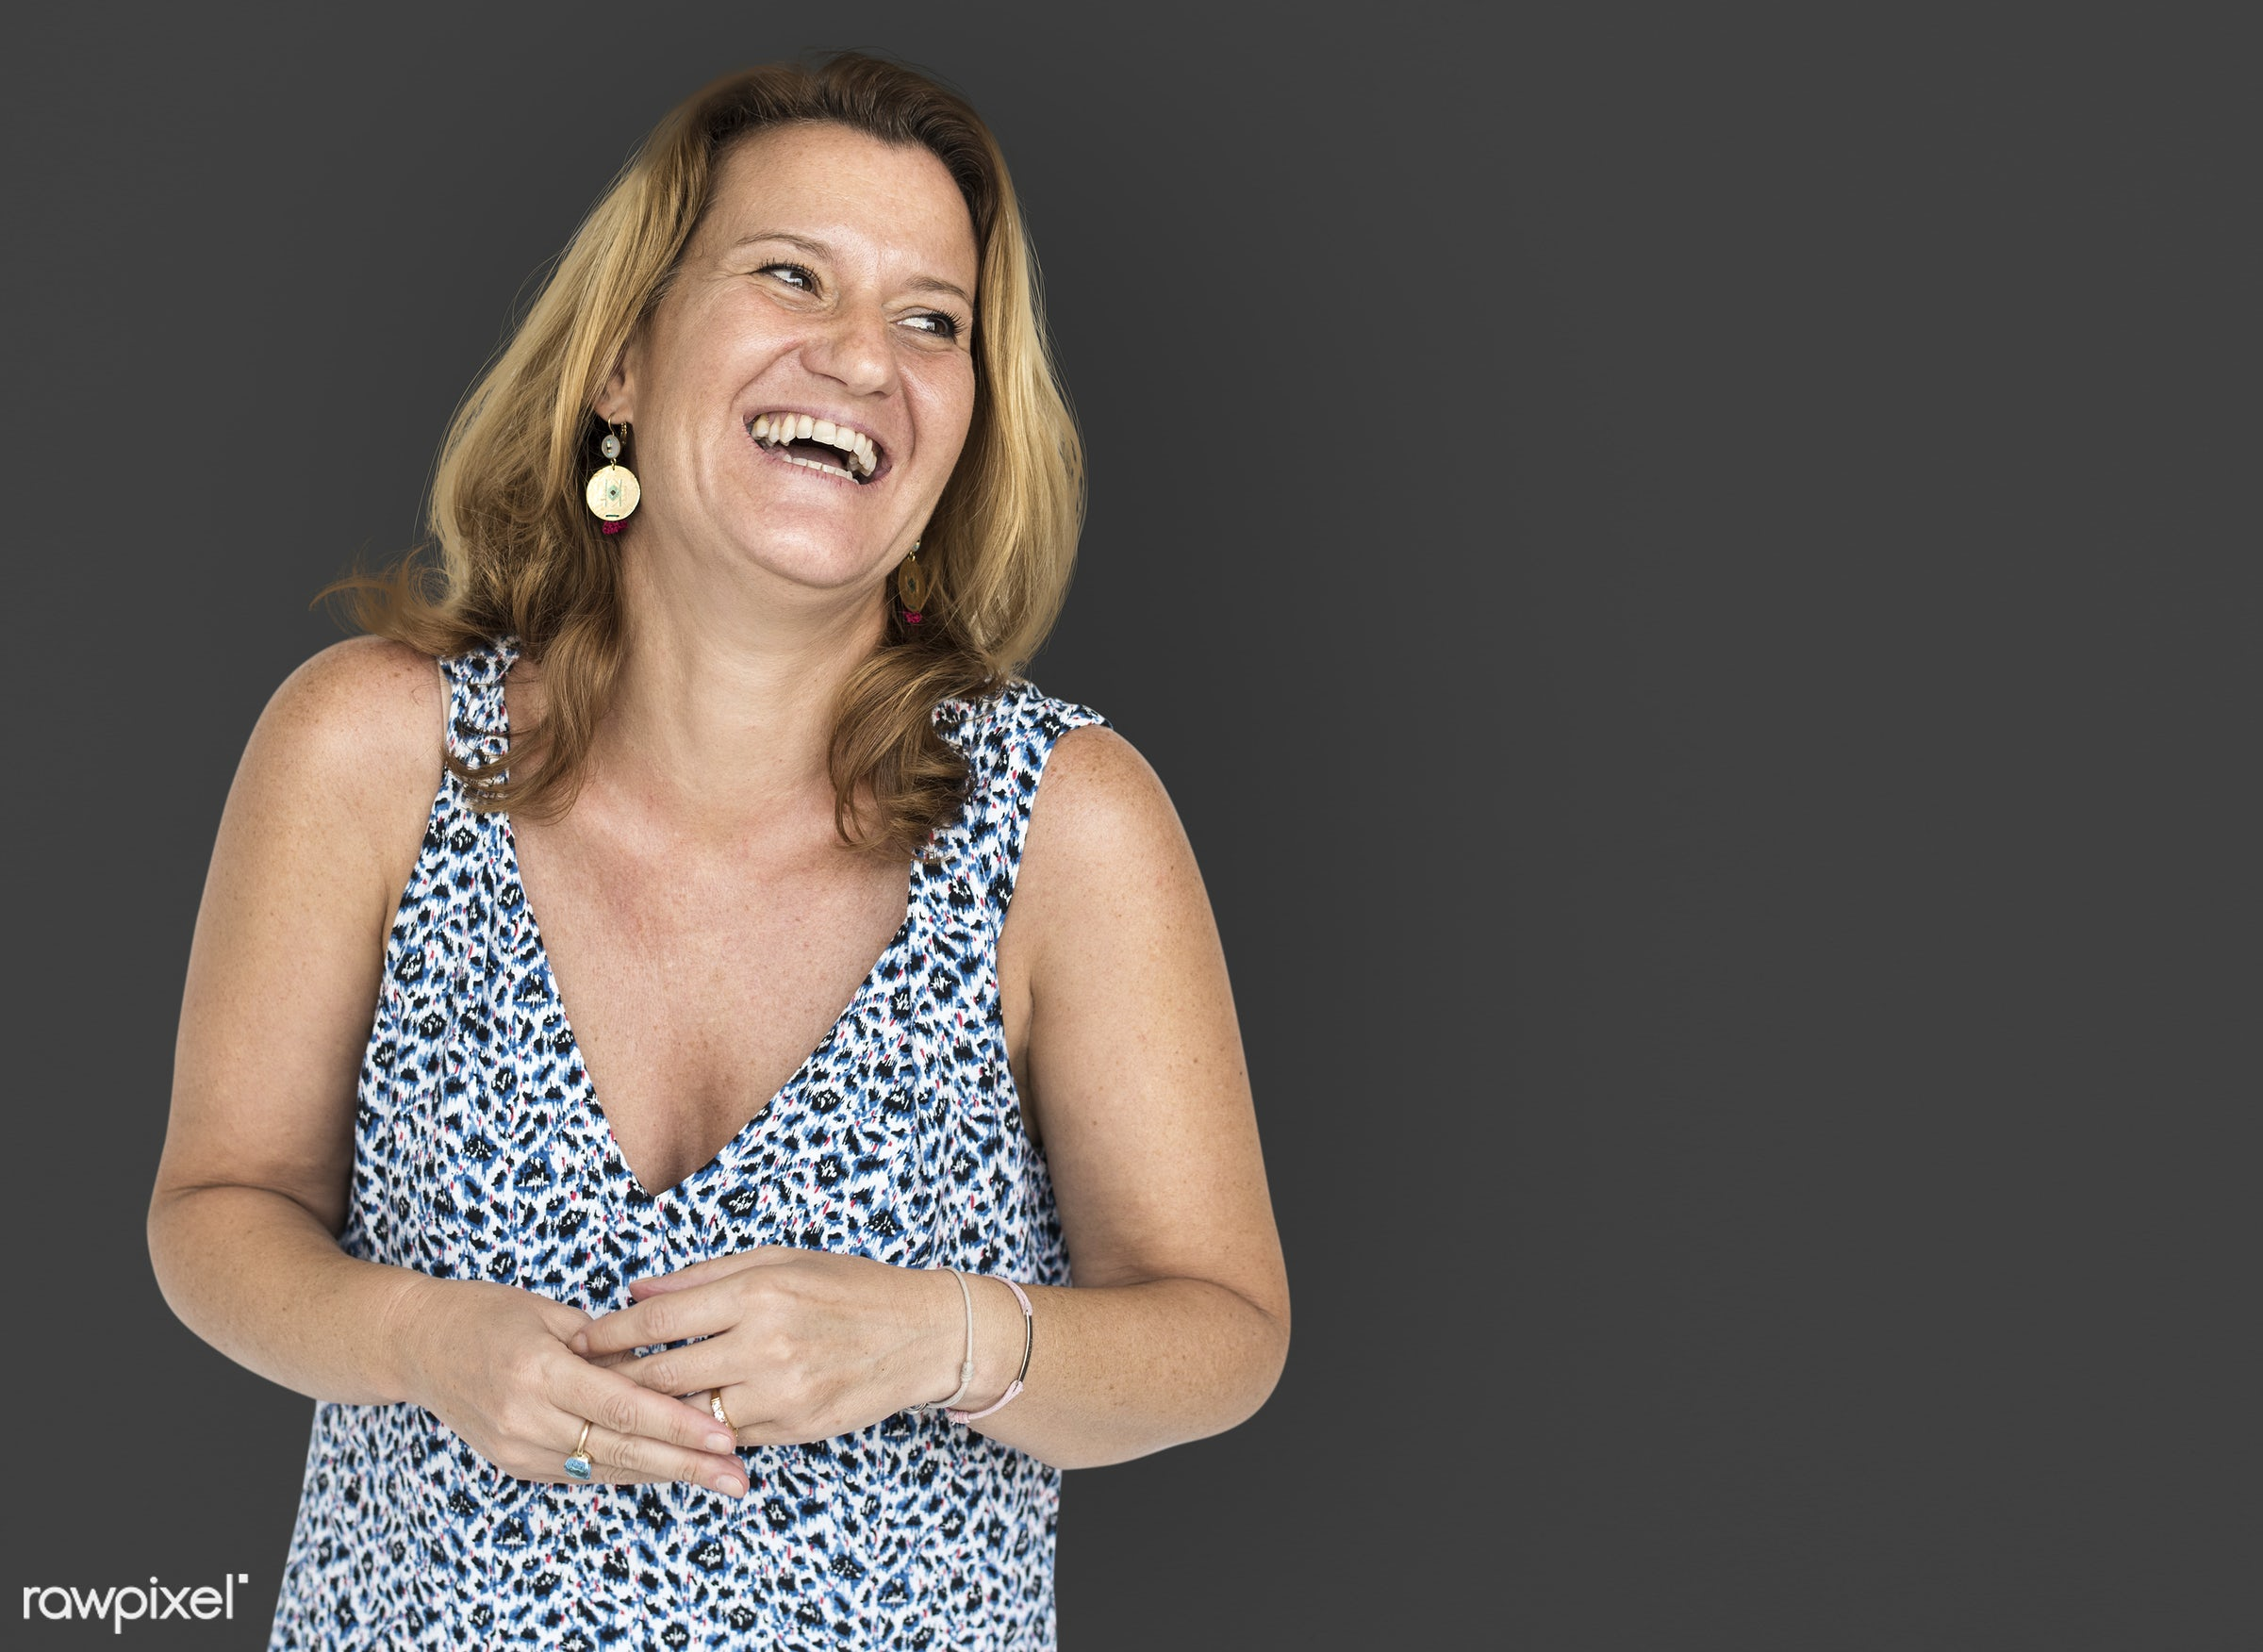 studio, model, person, people, race, style, solo, woman, lifestyle, casual, feminism, smiling, isolated, gesture, happiness...